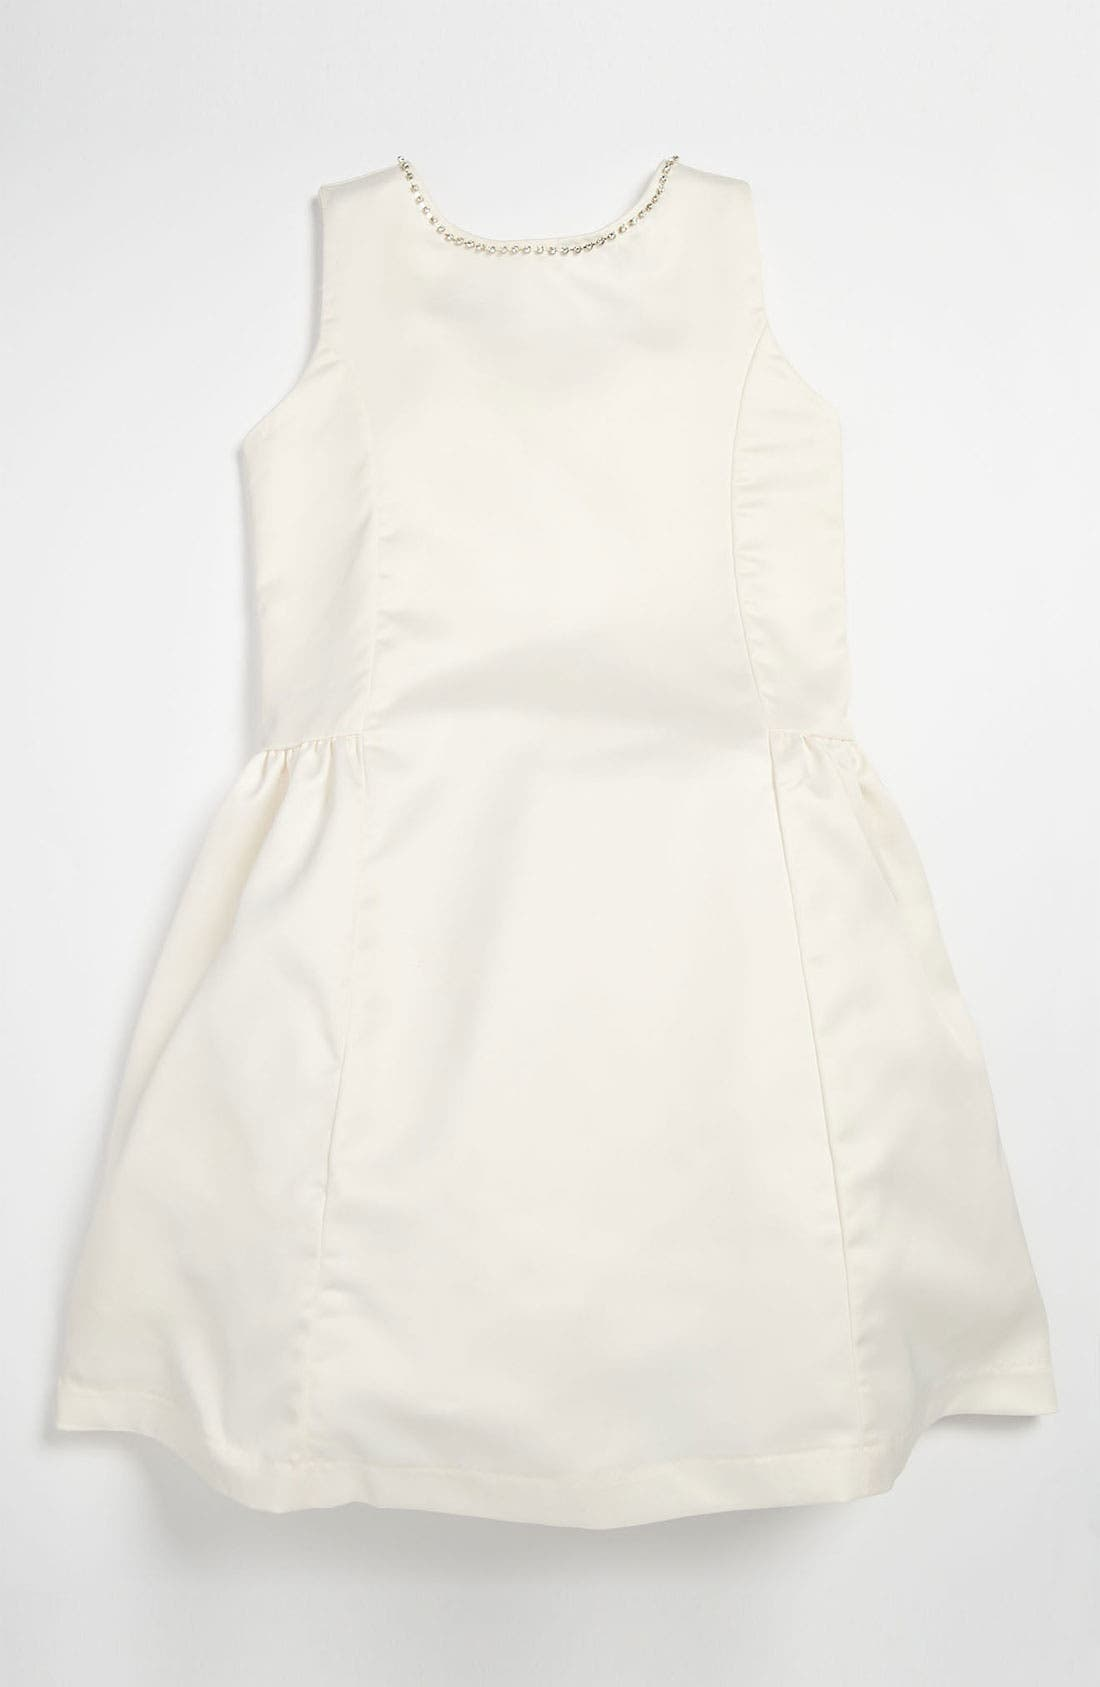 Alternate Image 1 Selected - La Piccola Danza Kidswear Bow Back Dress (Little Girls & Big Girls)